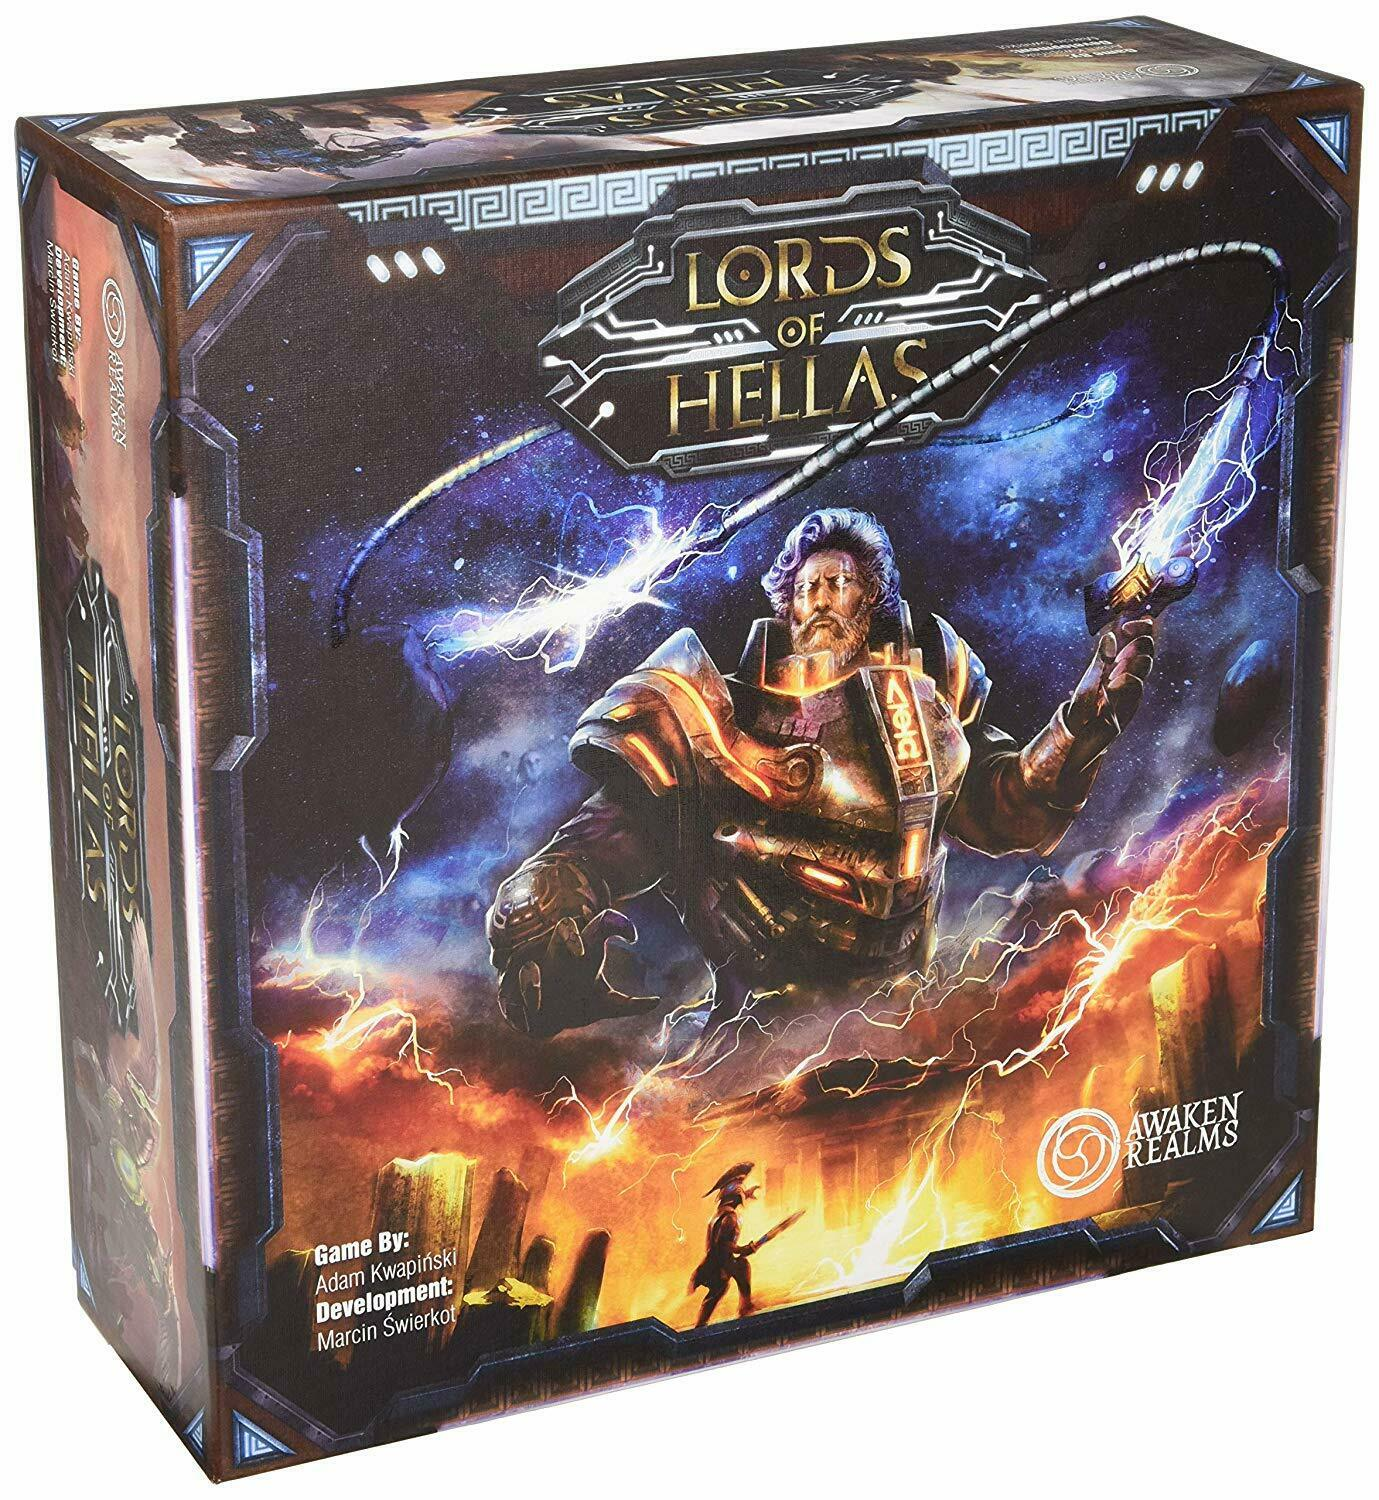 Lords of Hellas Board Game by AWAKEN Realms Brand ny and seled